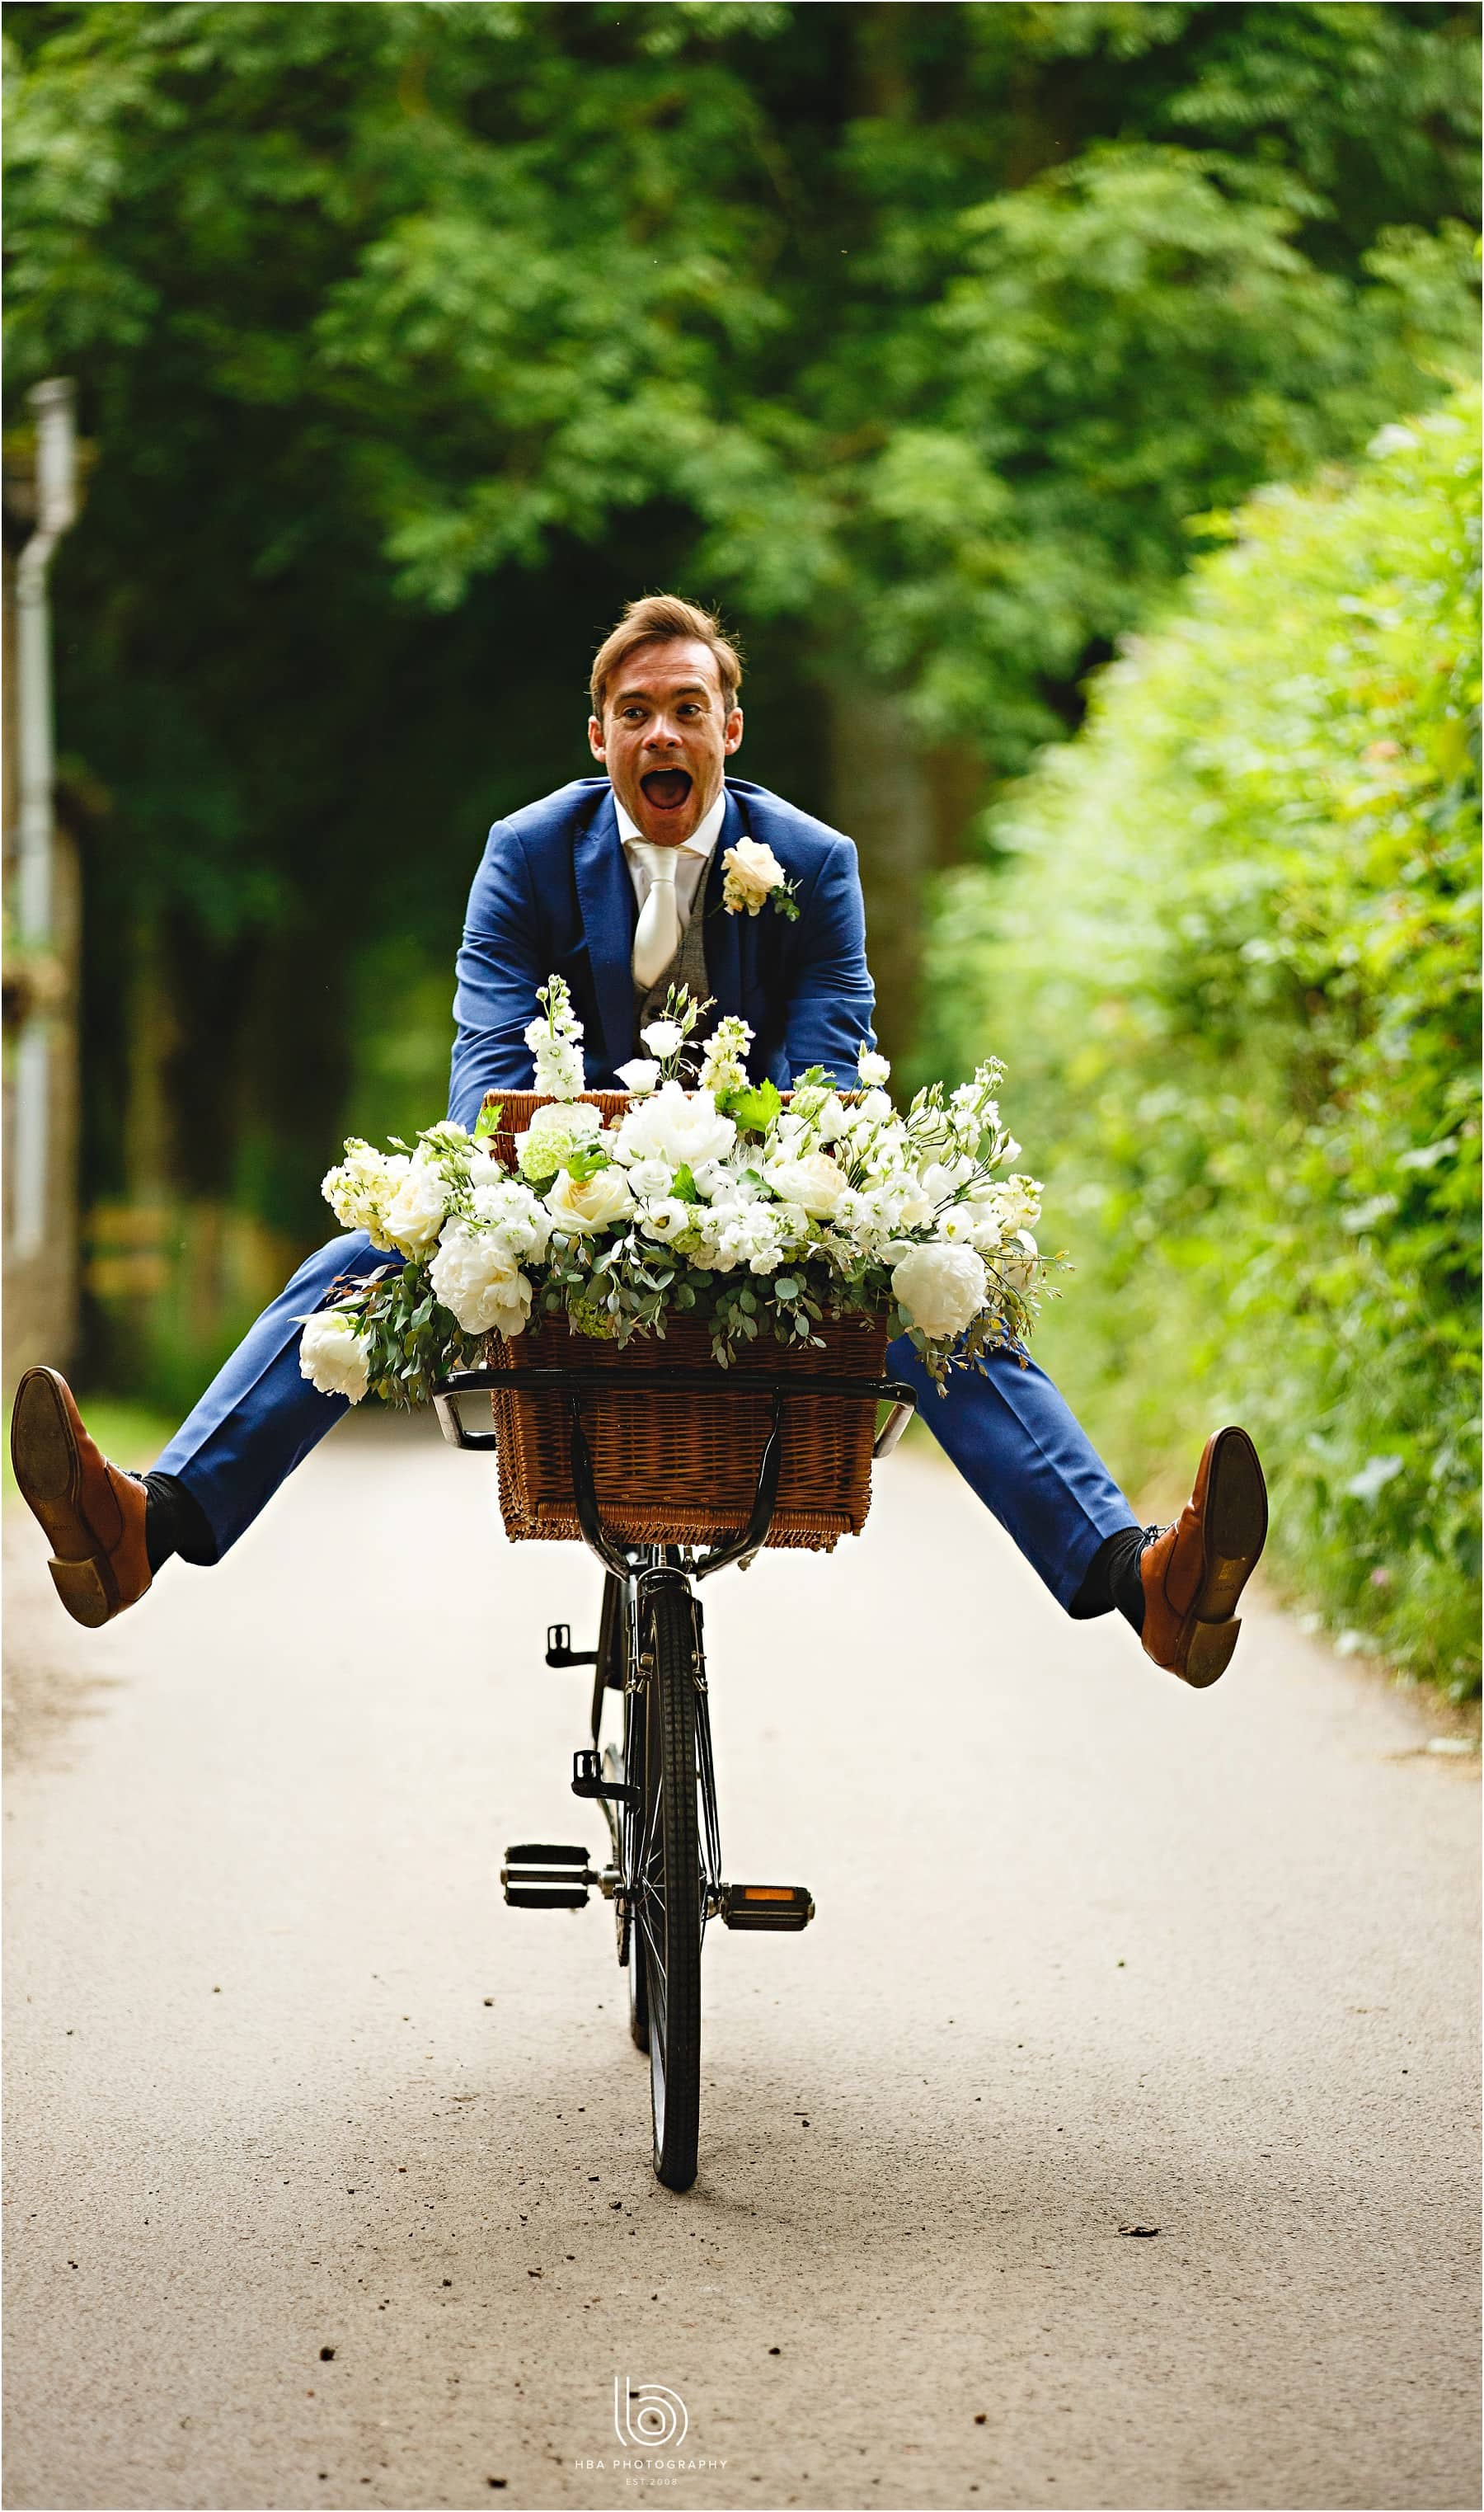 the groom riding his bike